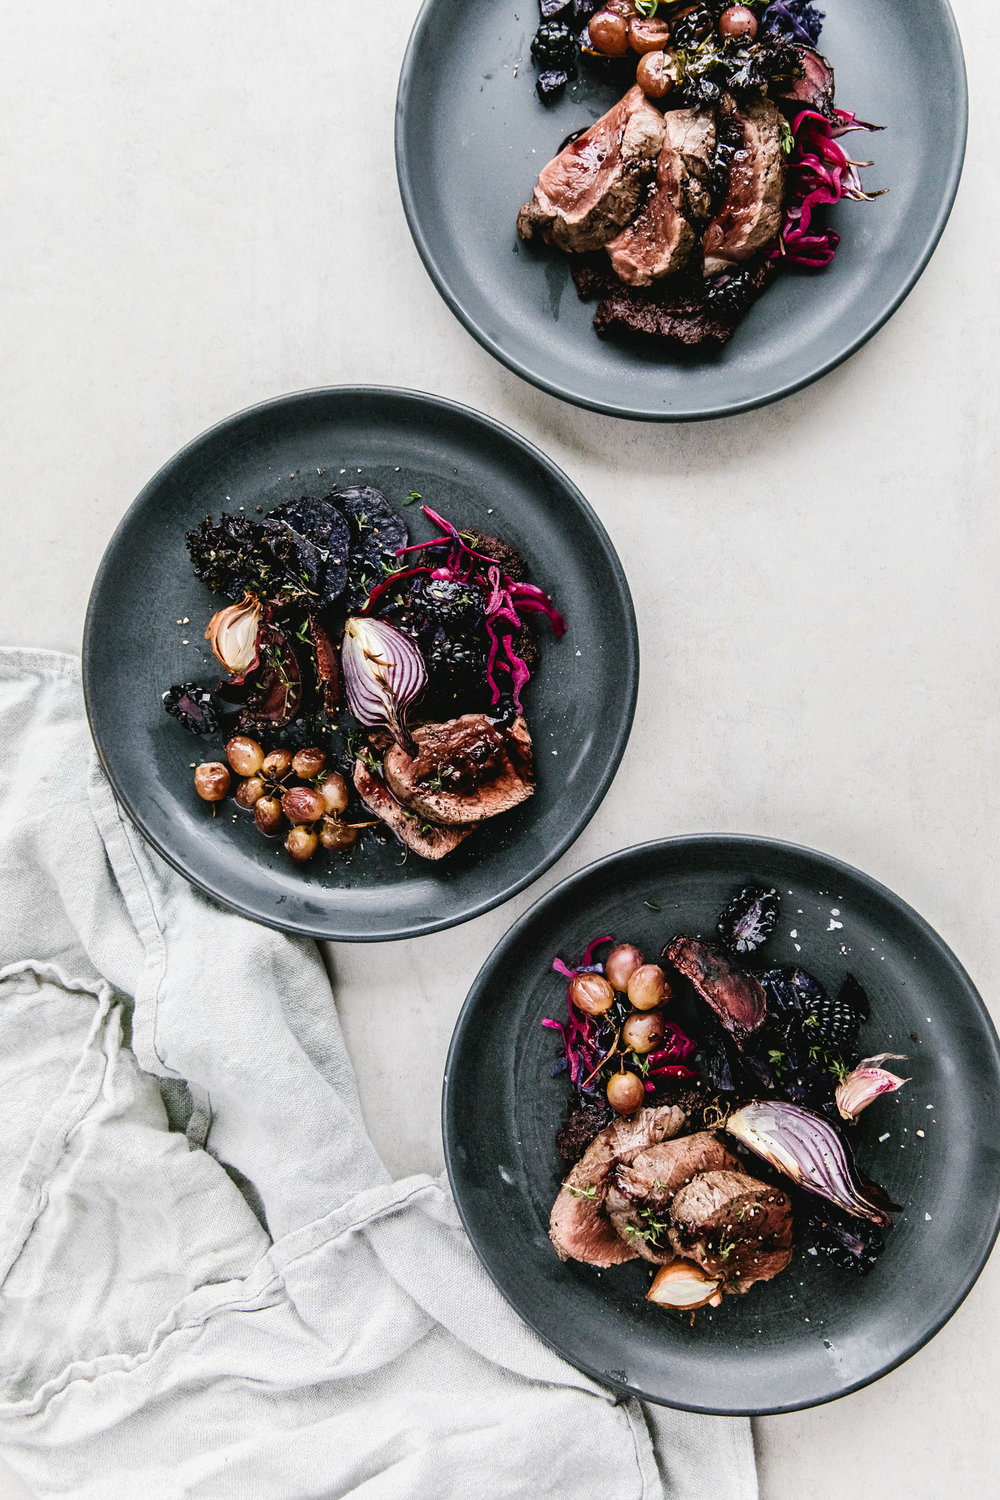 Venison With Red Cabbage, Roasted Grapes, and Wild Garlic